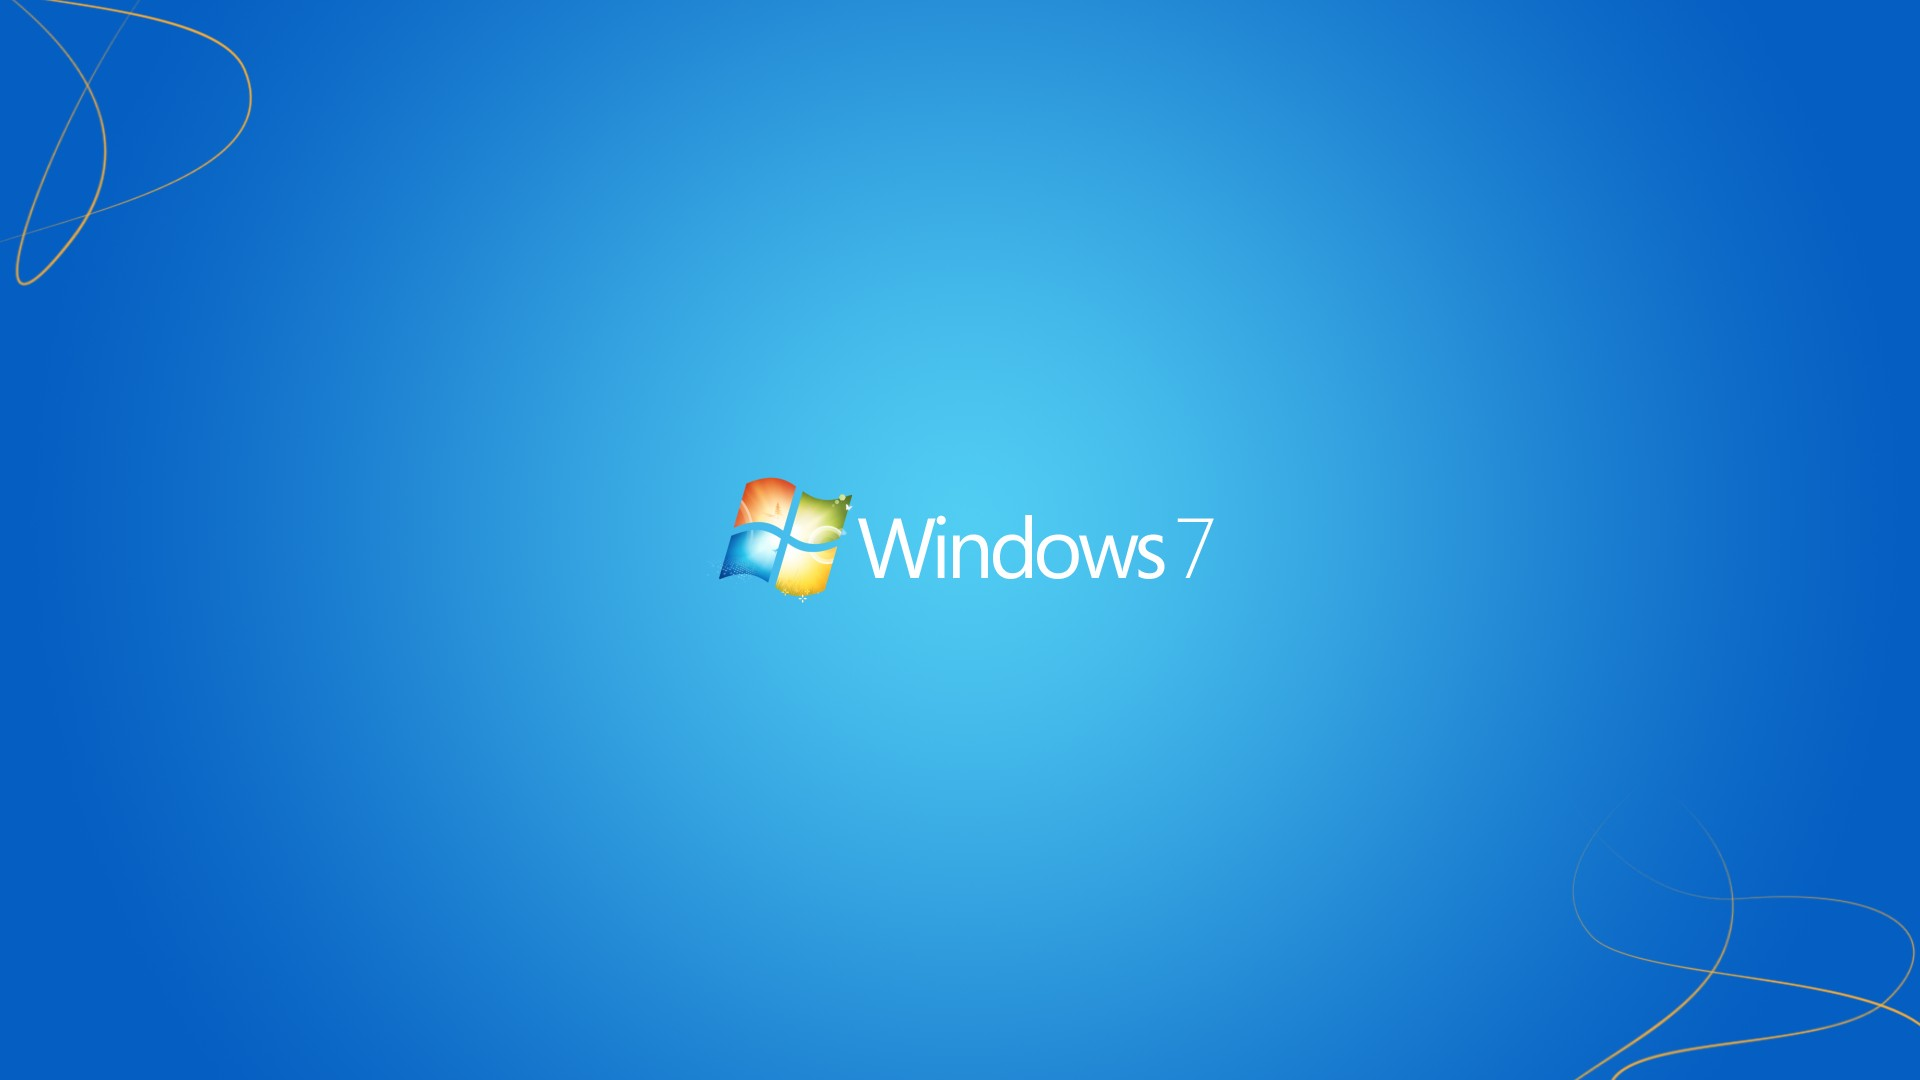 1920x1080 windows 7 wallpaper: 56+ Windows 7 Wallpapers ·① Download Free Awesome Full HD